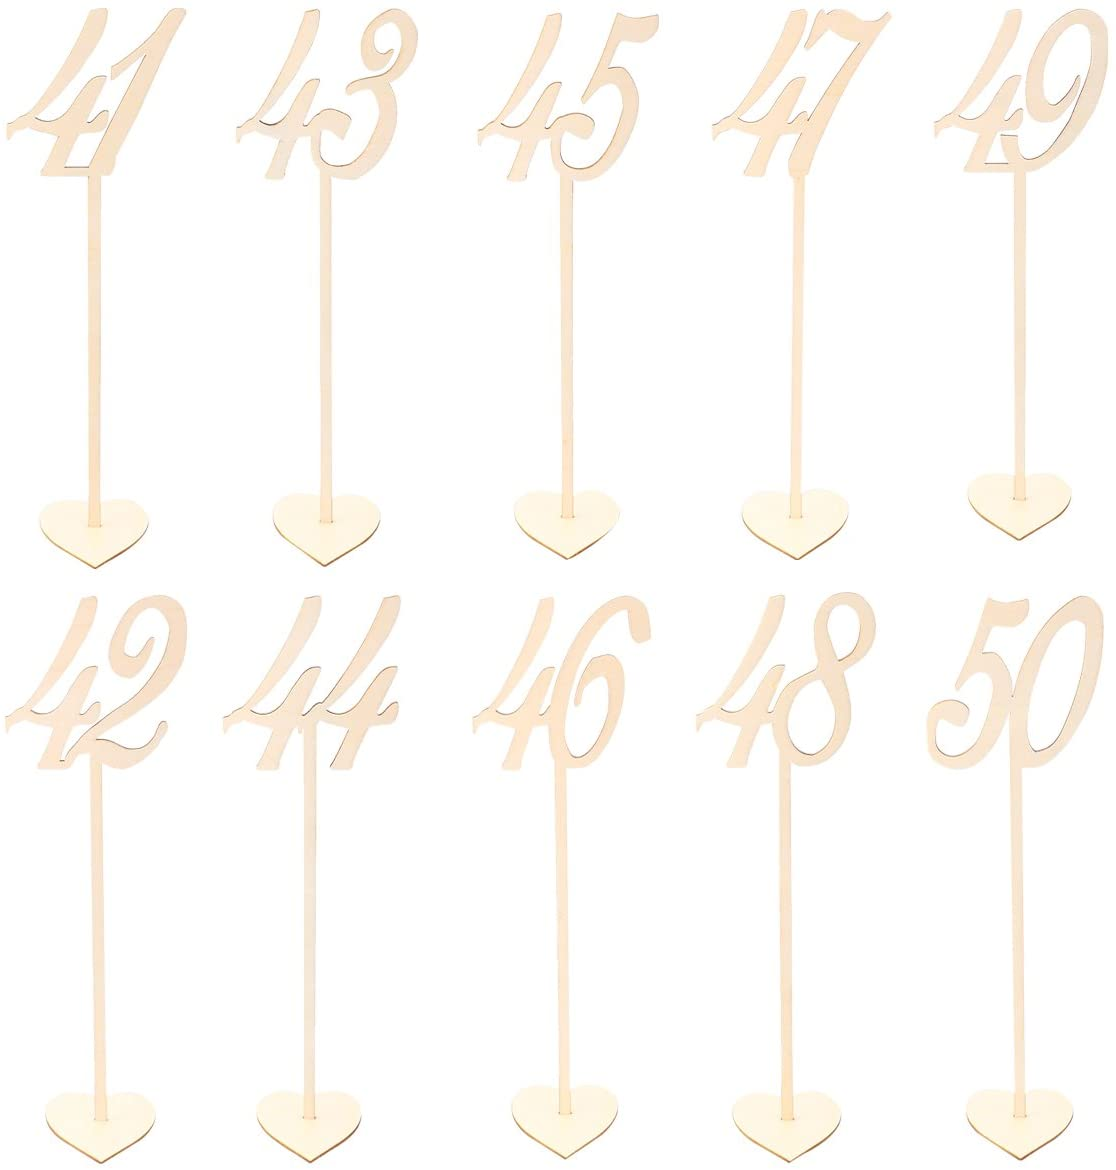 LUOEM 10pcs Wooden Table Numbers 41-50 with Holder Base for Wedding Birthday Party Table Decoration